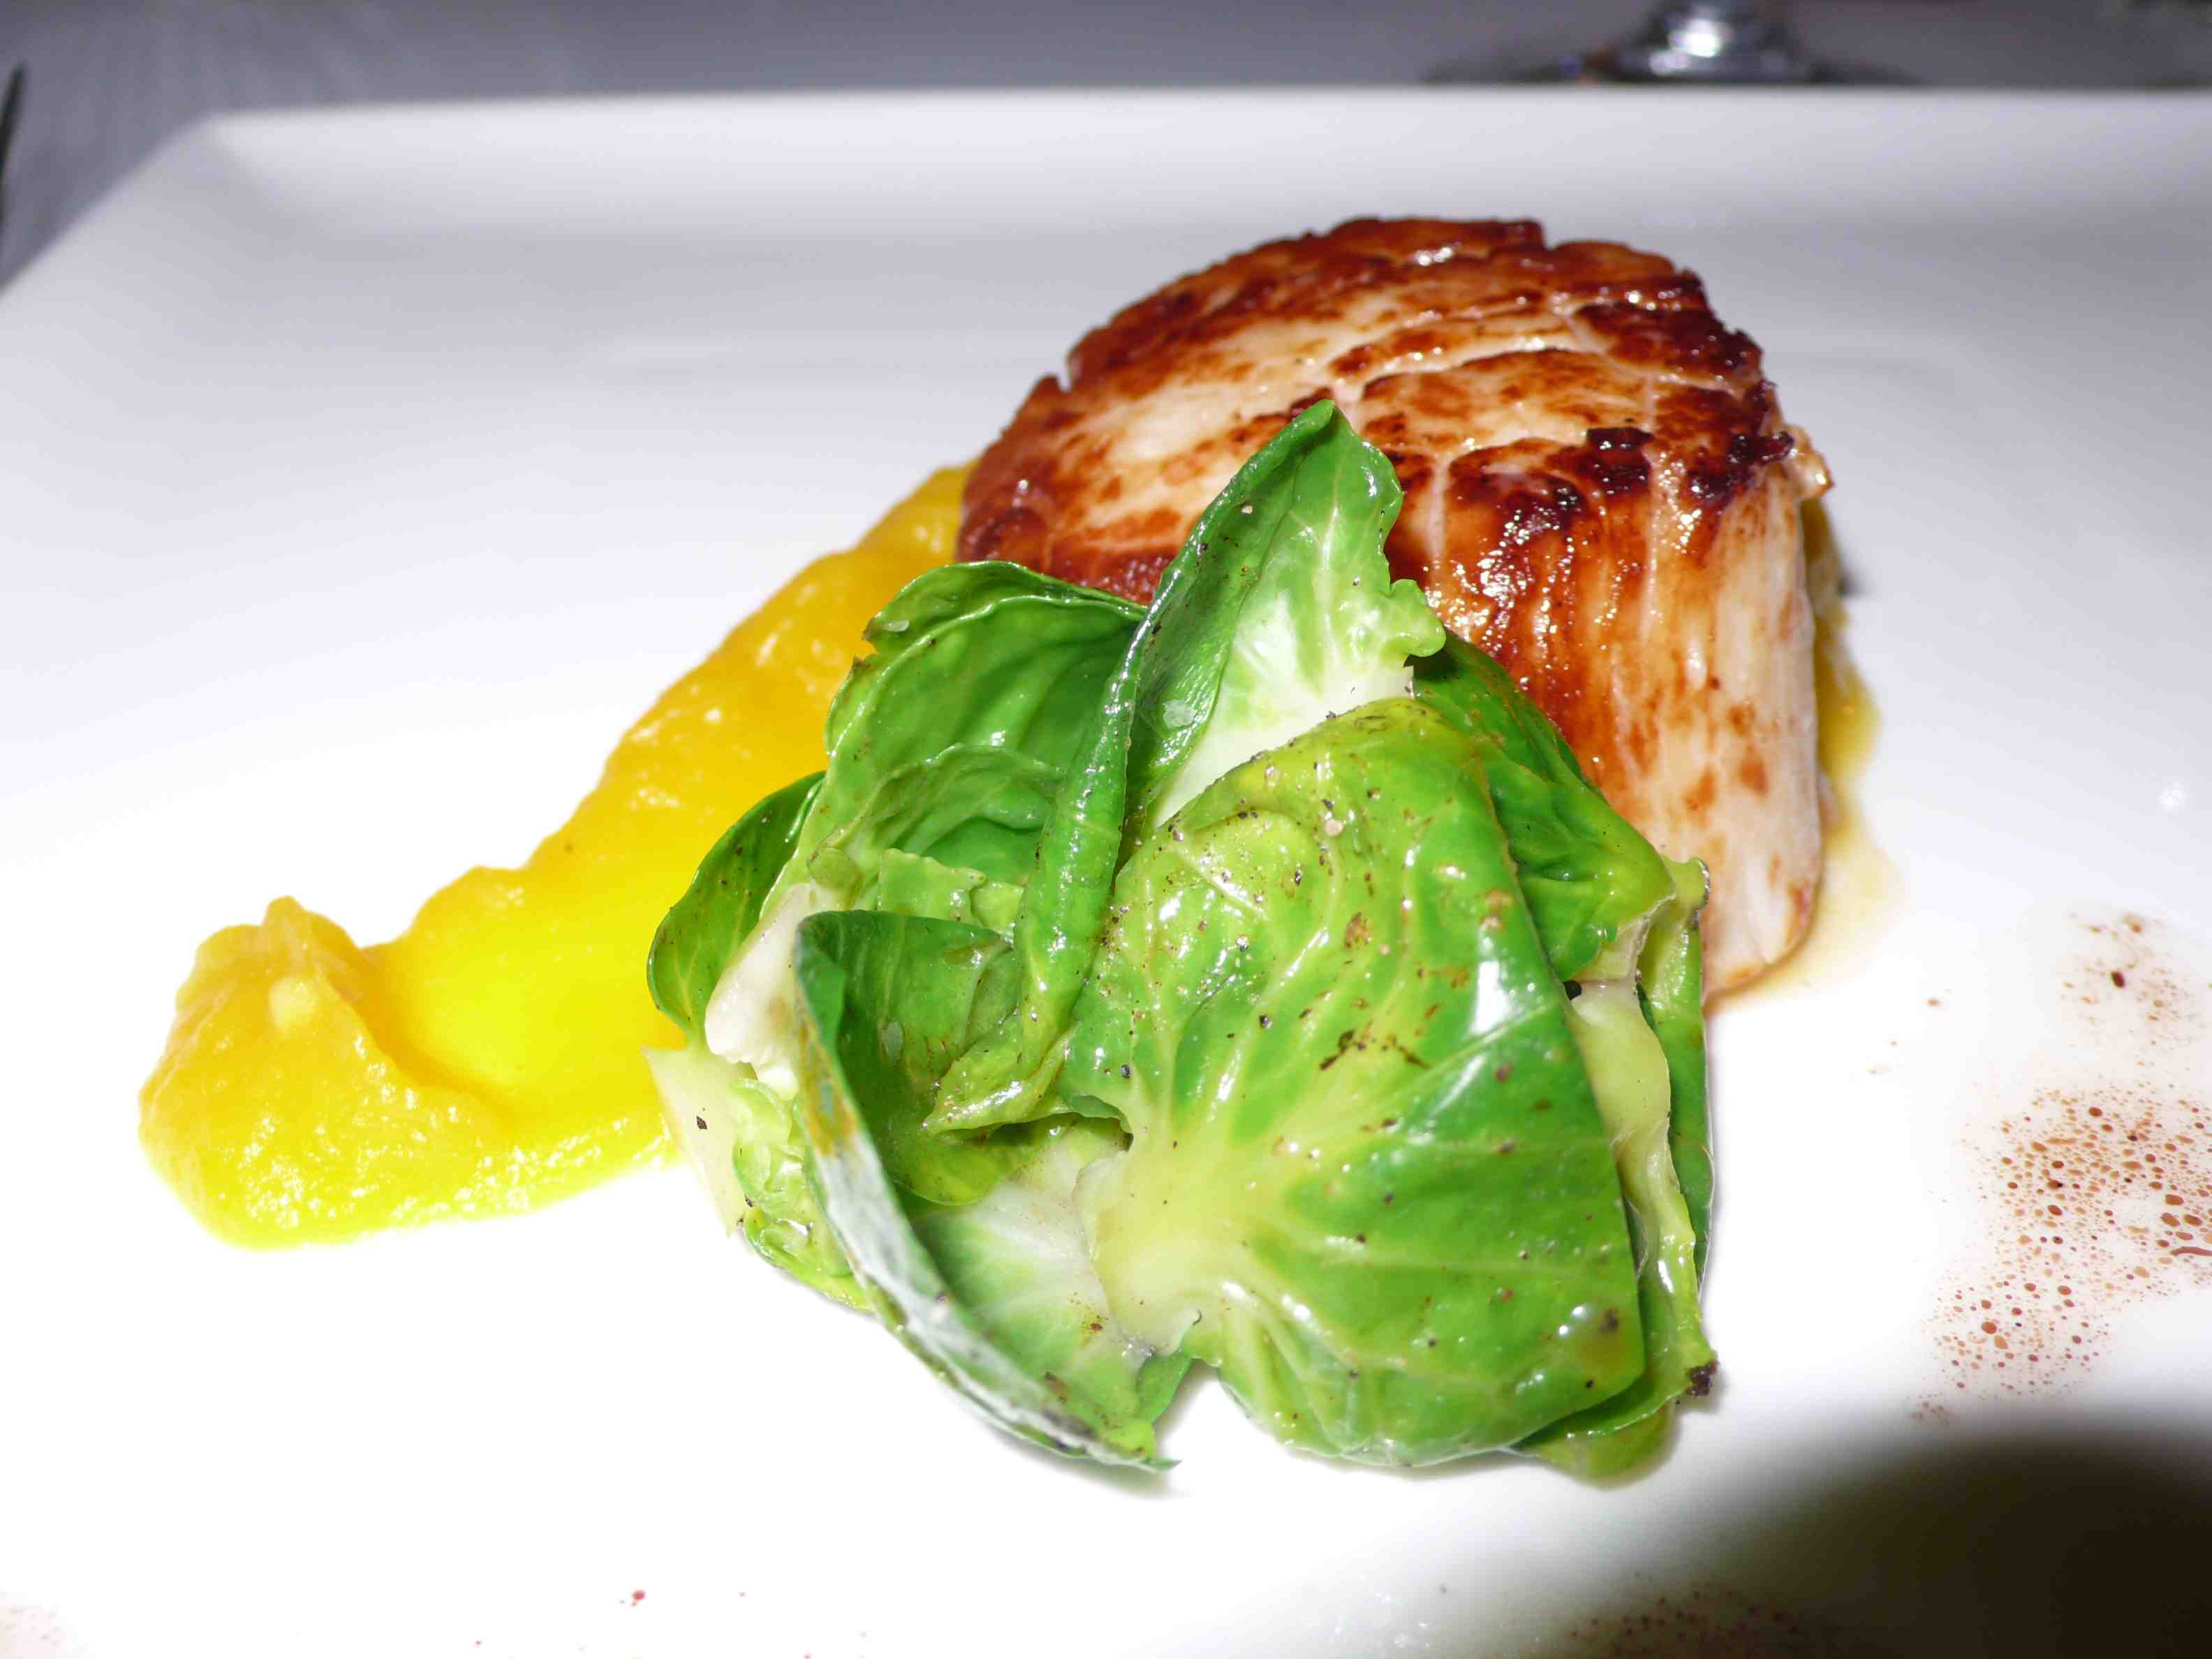 Scallop with squash puree and brussel sprout salad